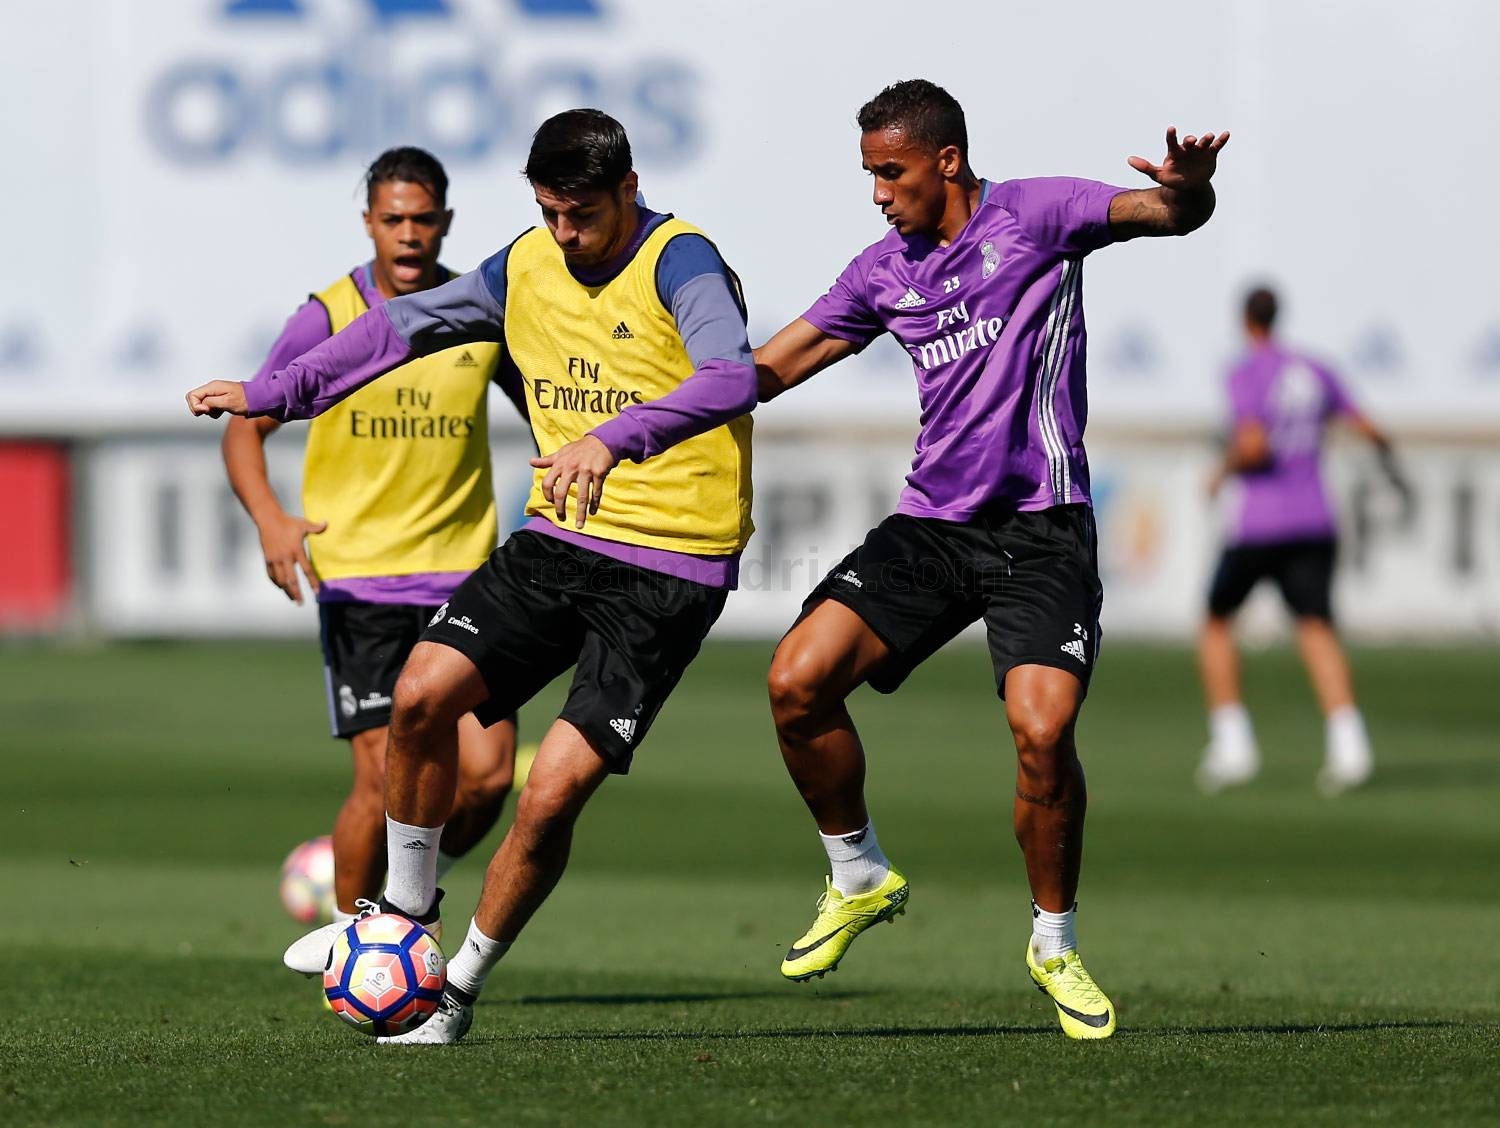 Real Madrid - Entrenamiento del Real Madrid - 23-09-2016